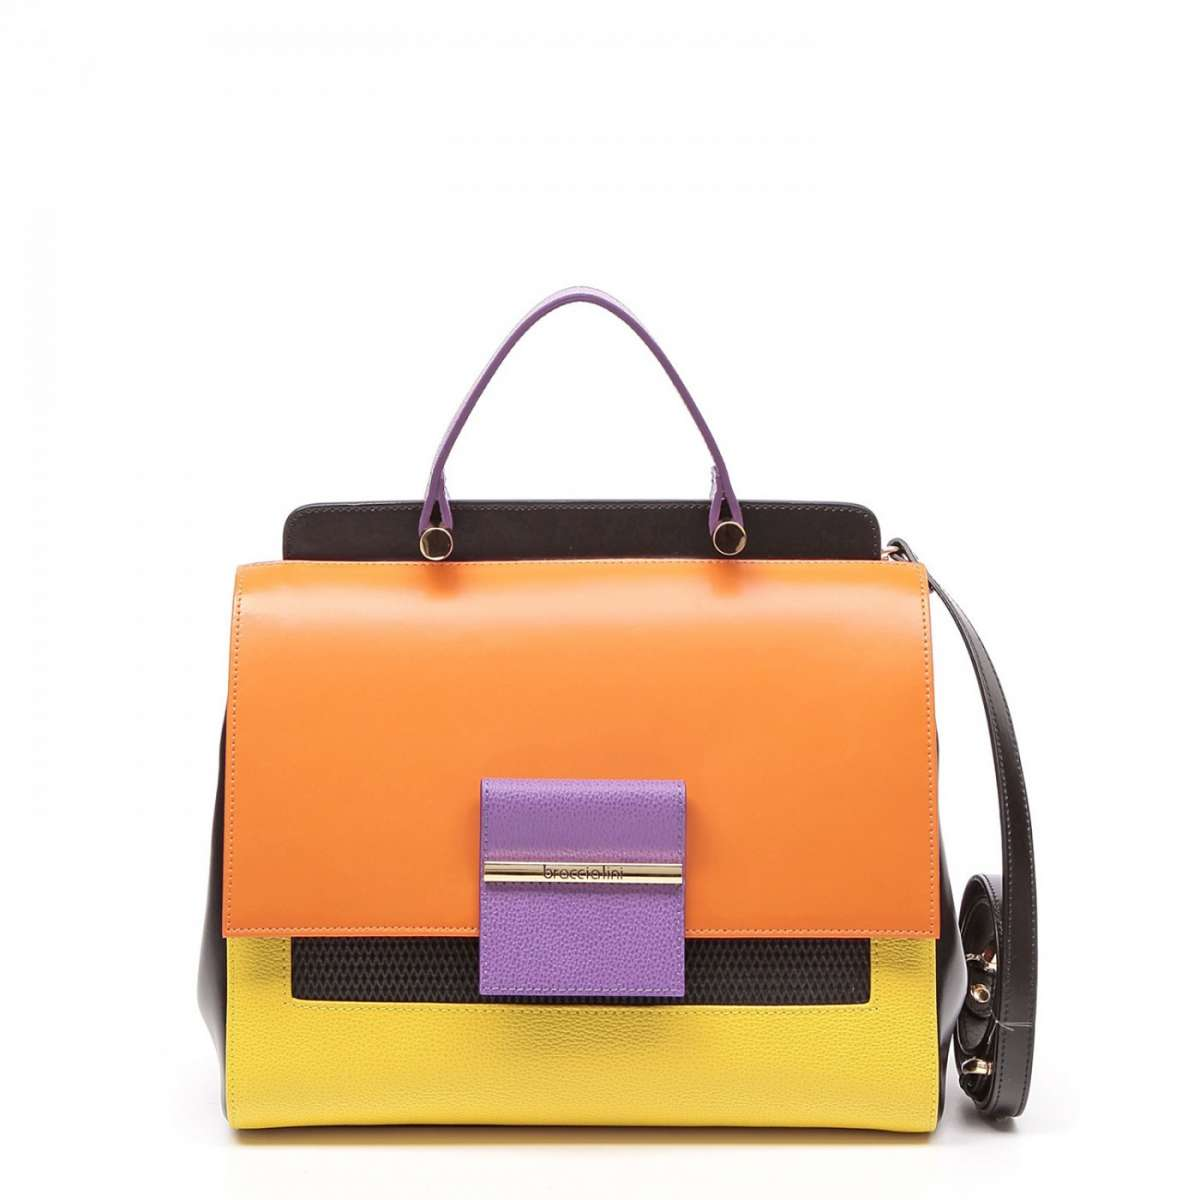 Handbag in color block